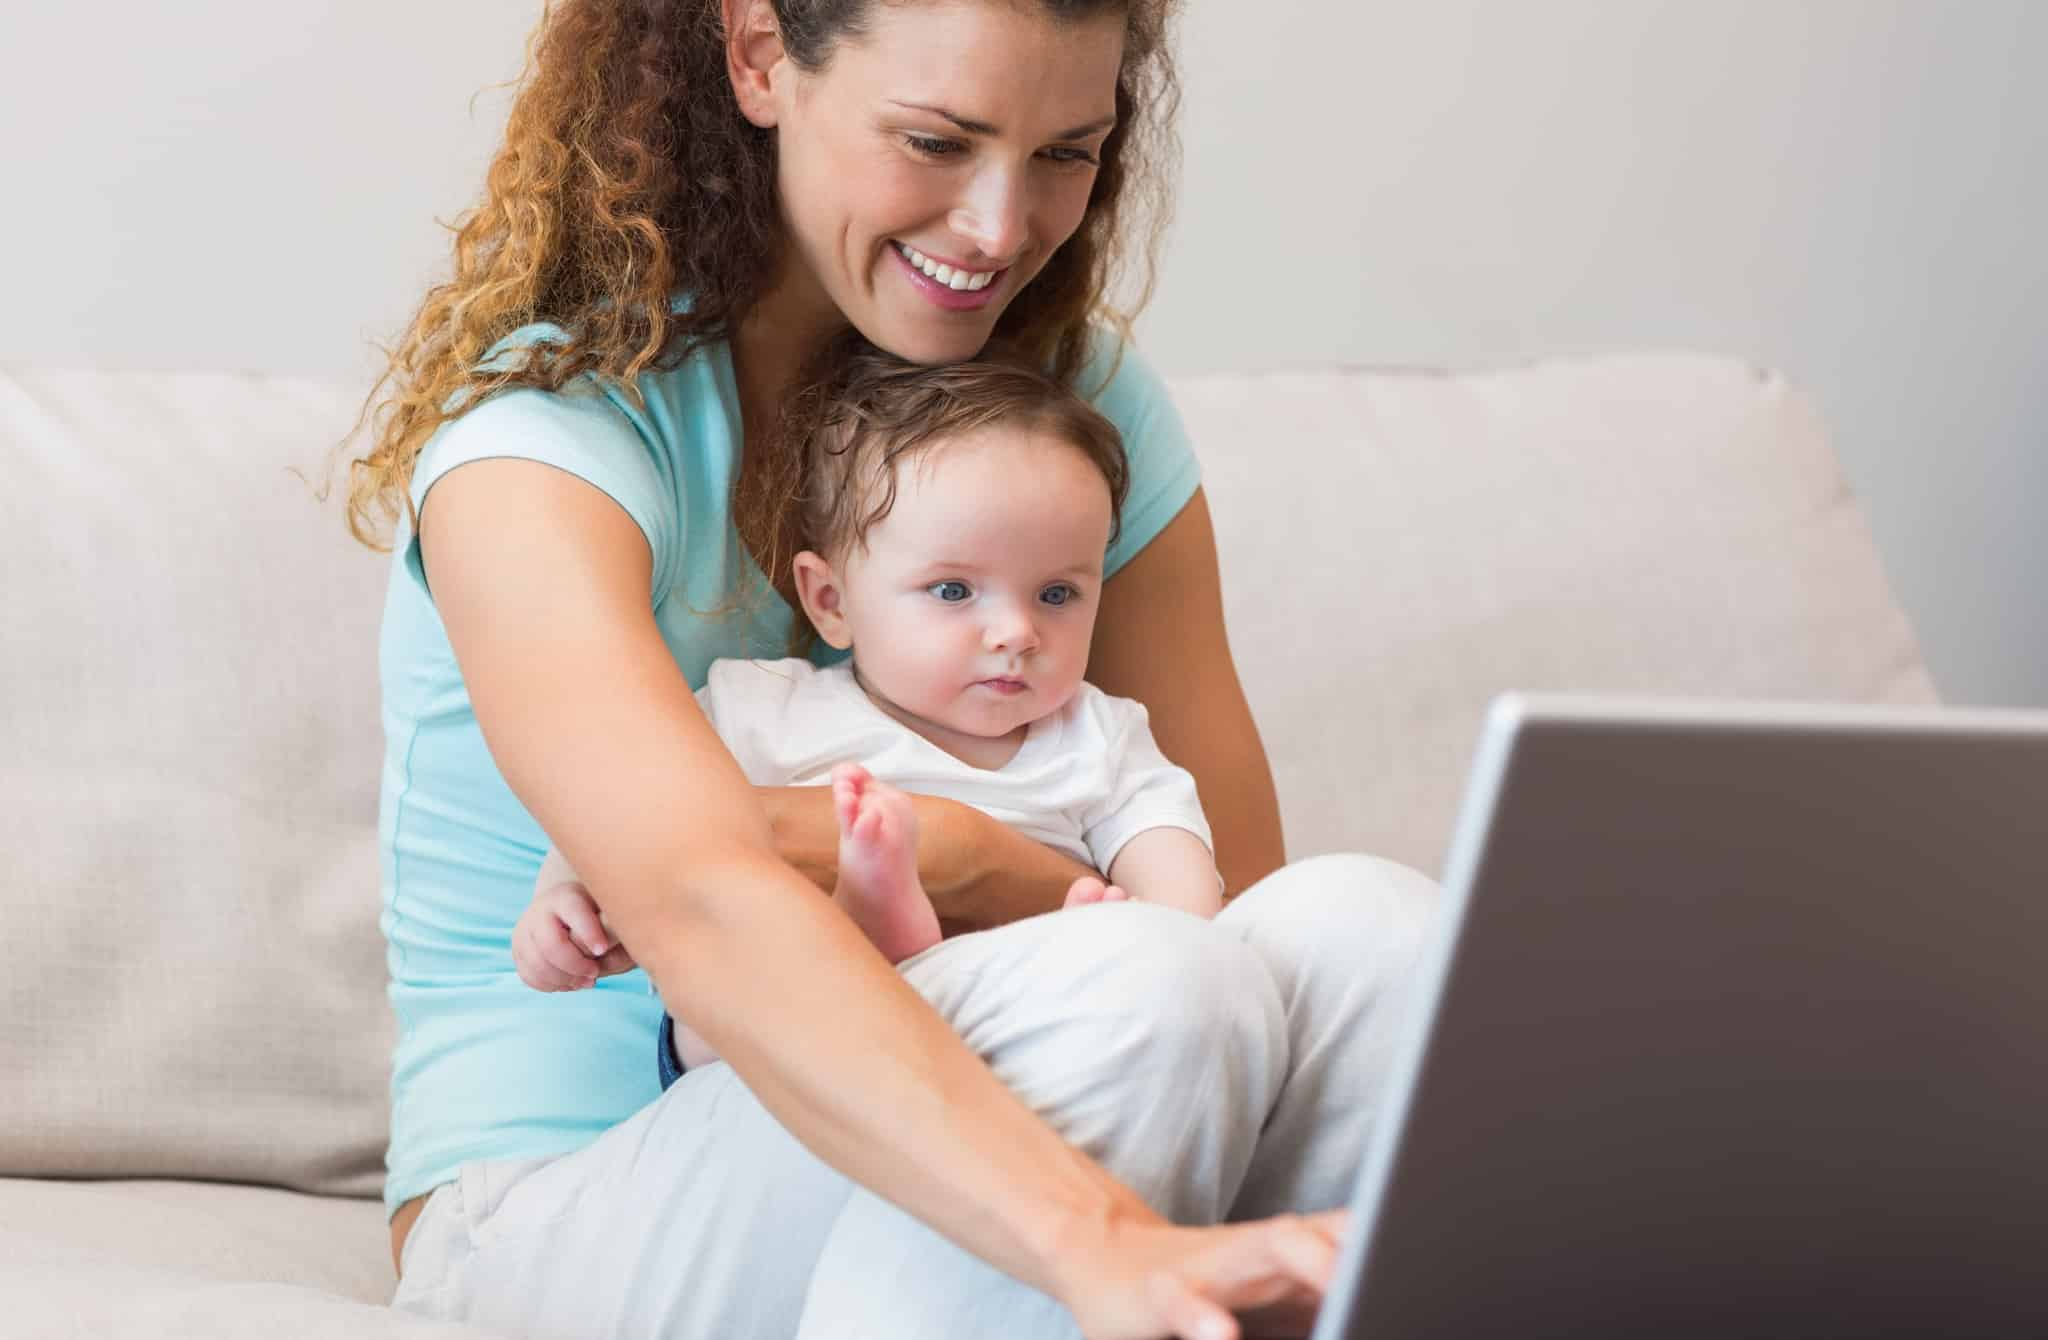 Smiling mother using laptop while holding baby in living room